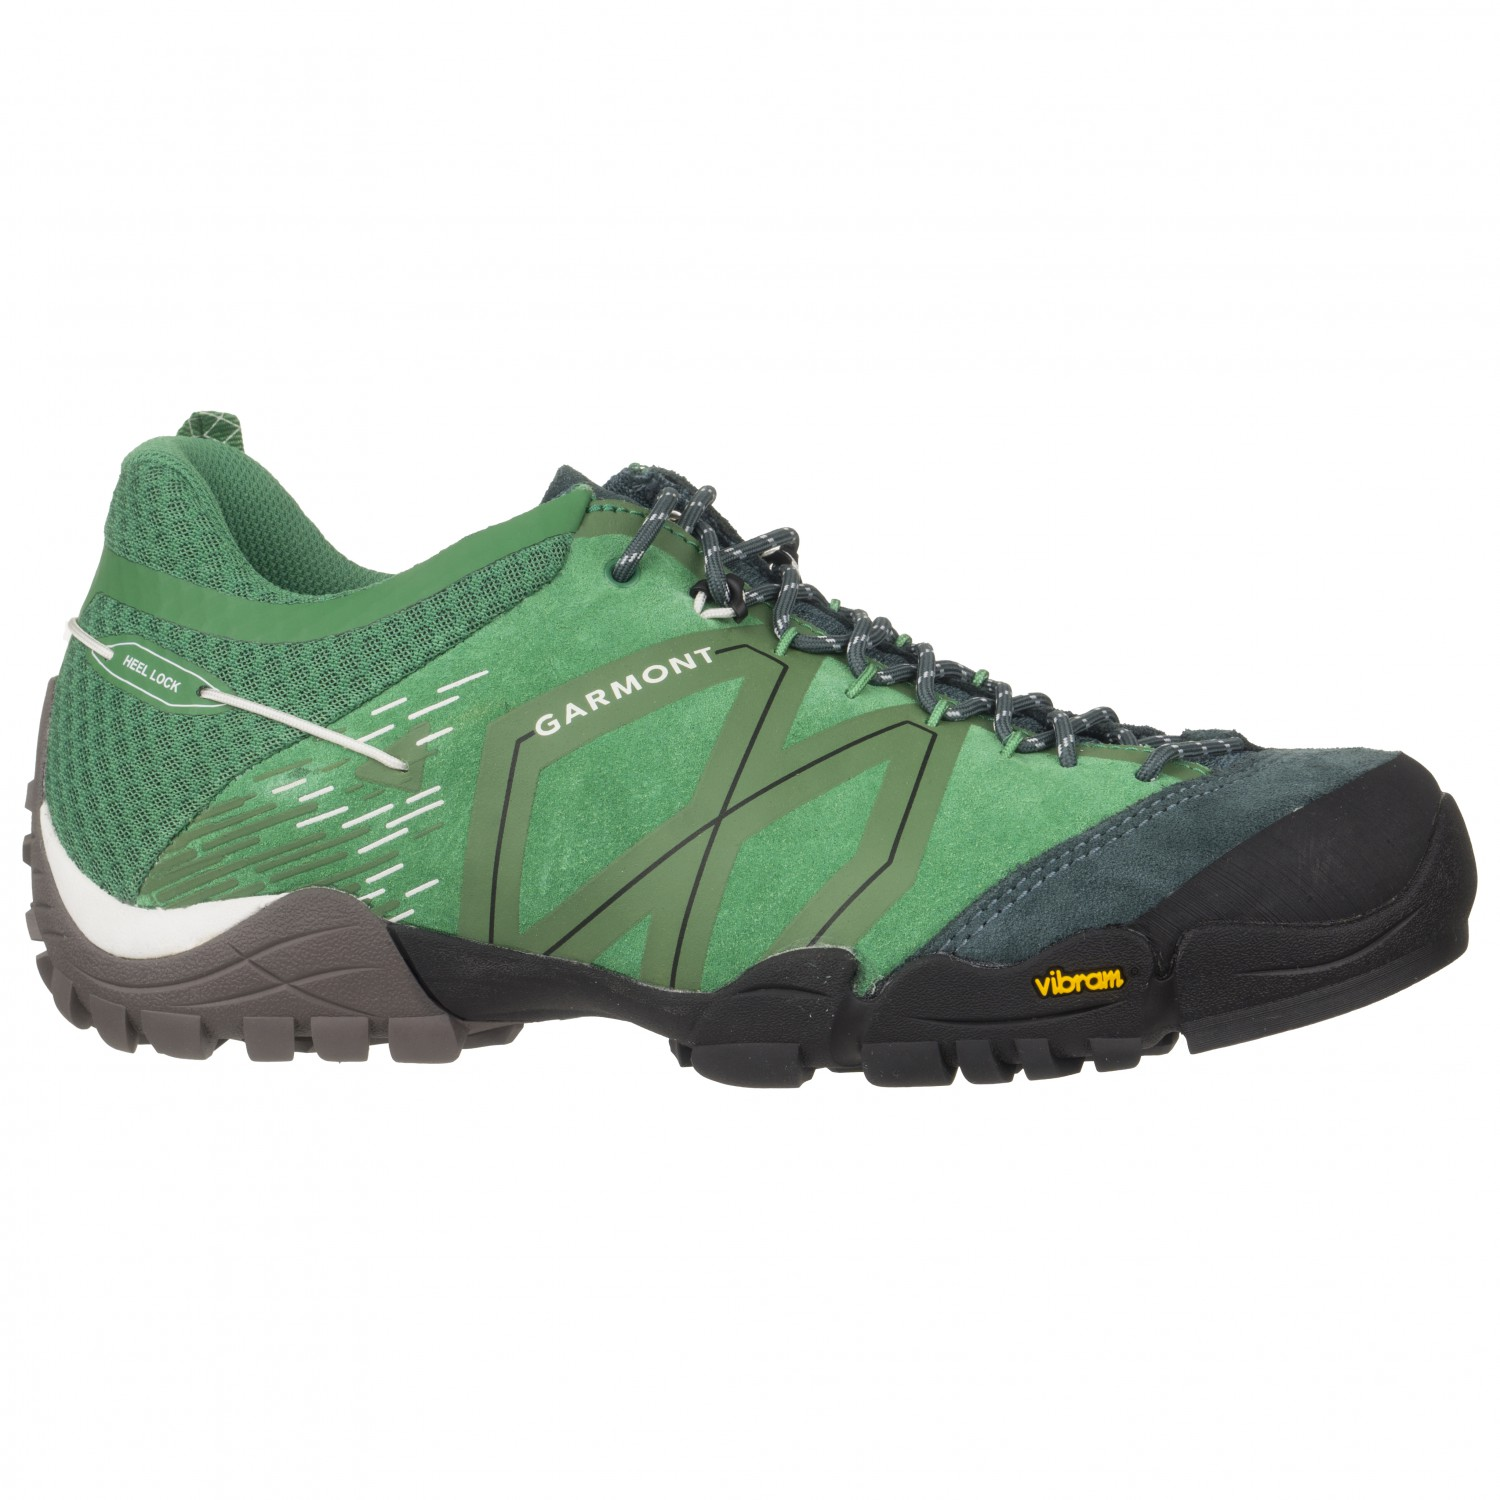 ... Garmont - Sticky Stone - Approach shoes ... 2119988f3d9